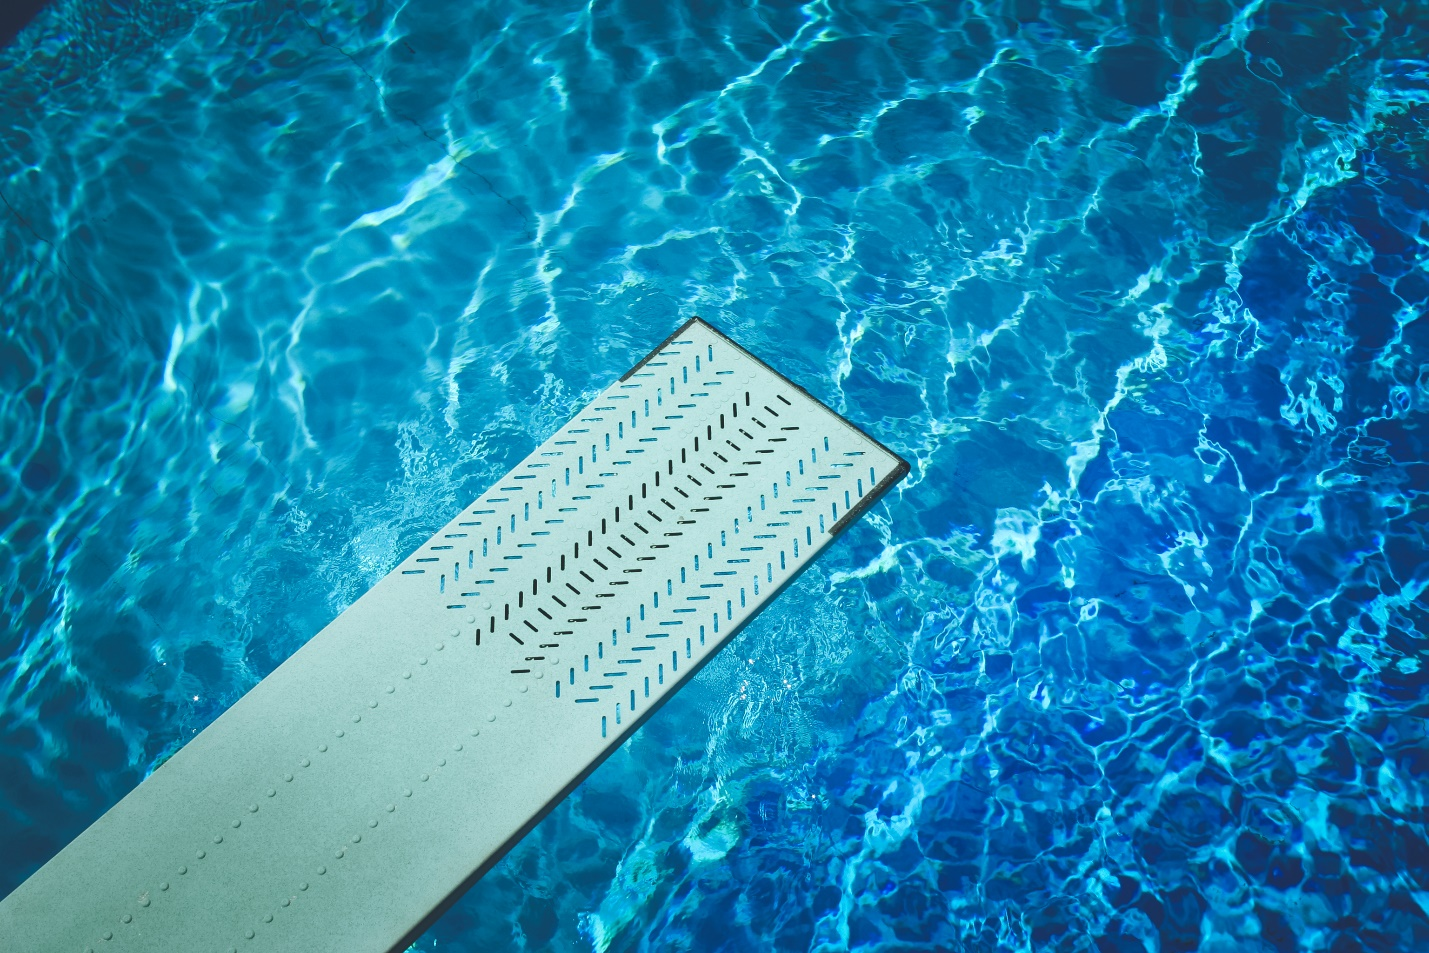 dallas defective pool injury lawyers - 5 Common Swimming Pool Defects